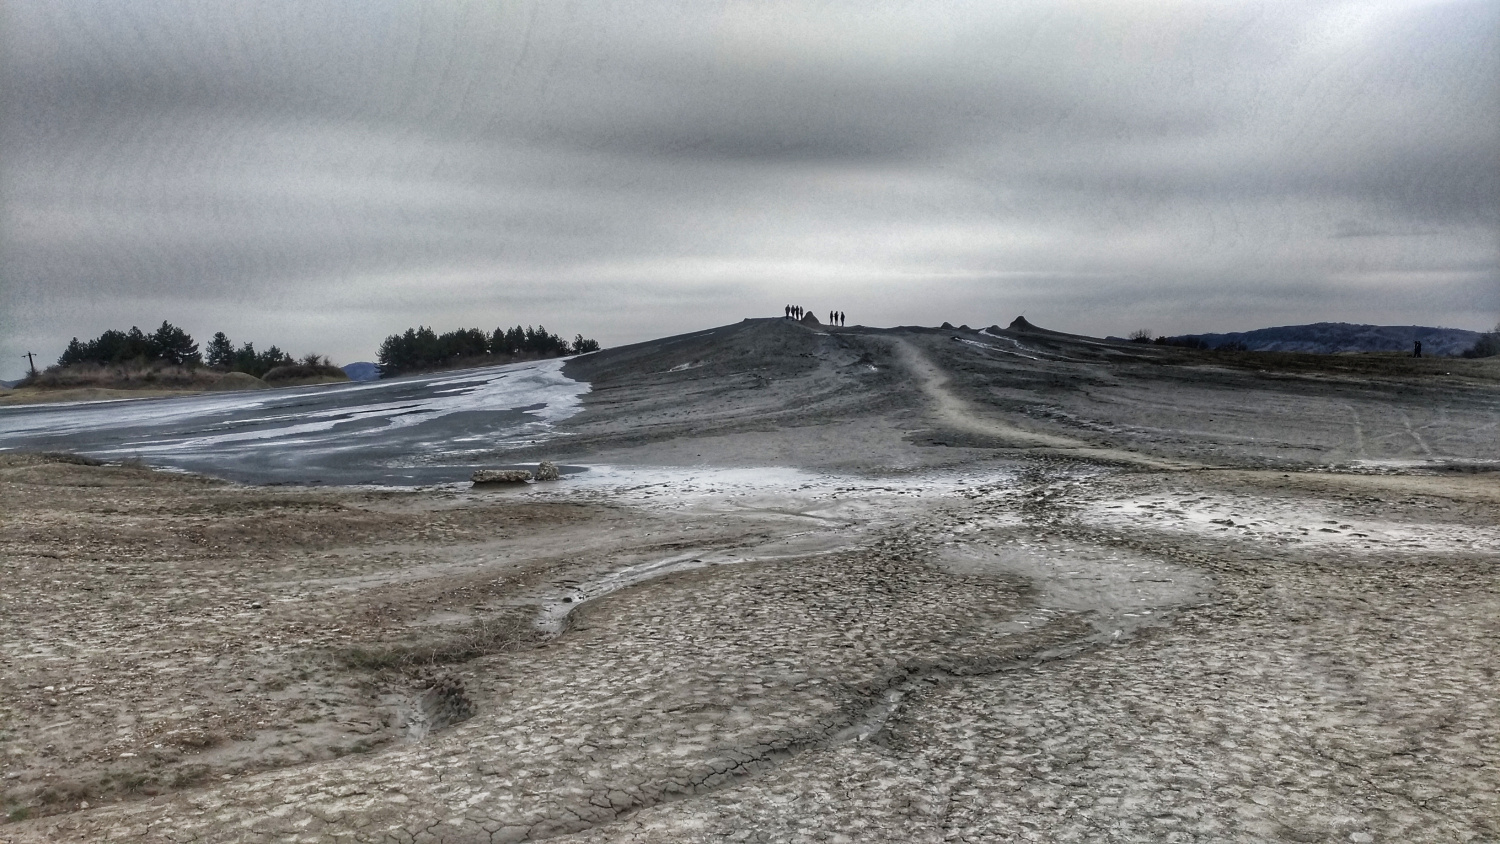 the Mud Volcanoes, Buzau, Romania